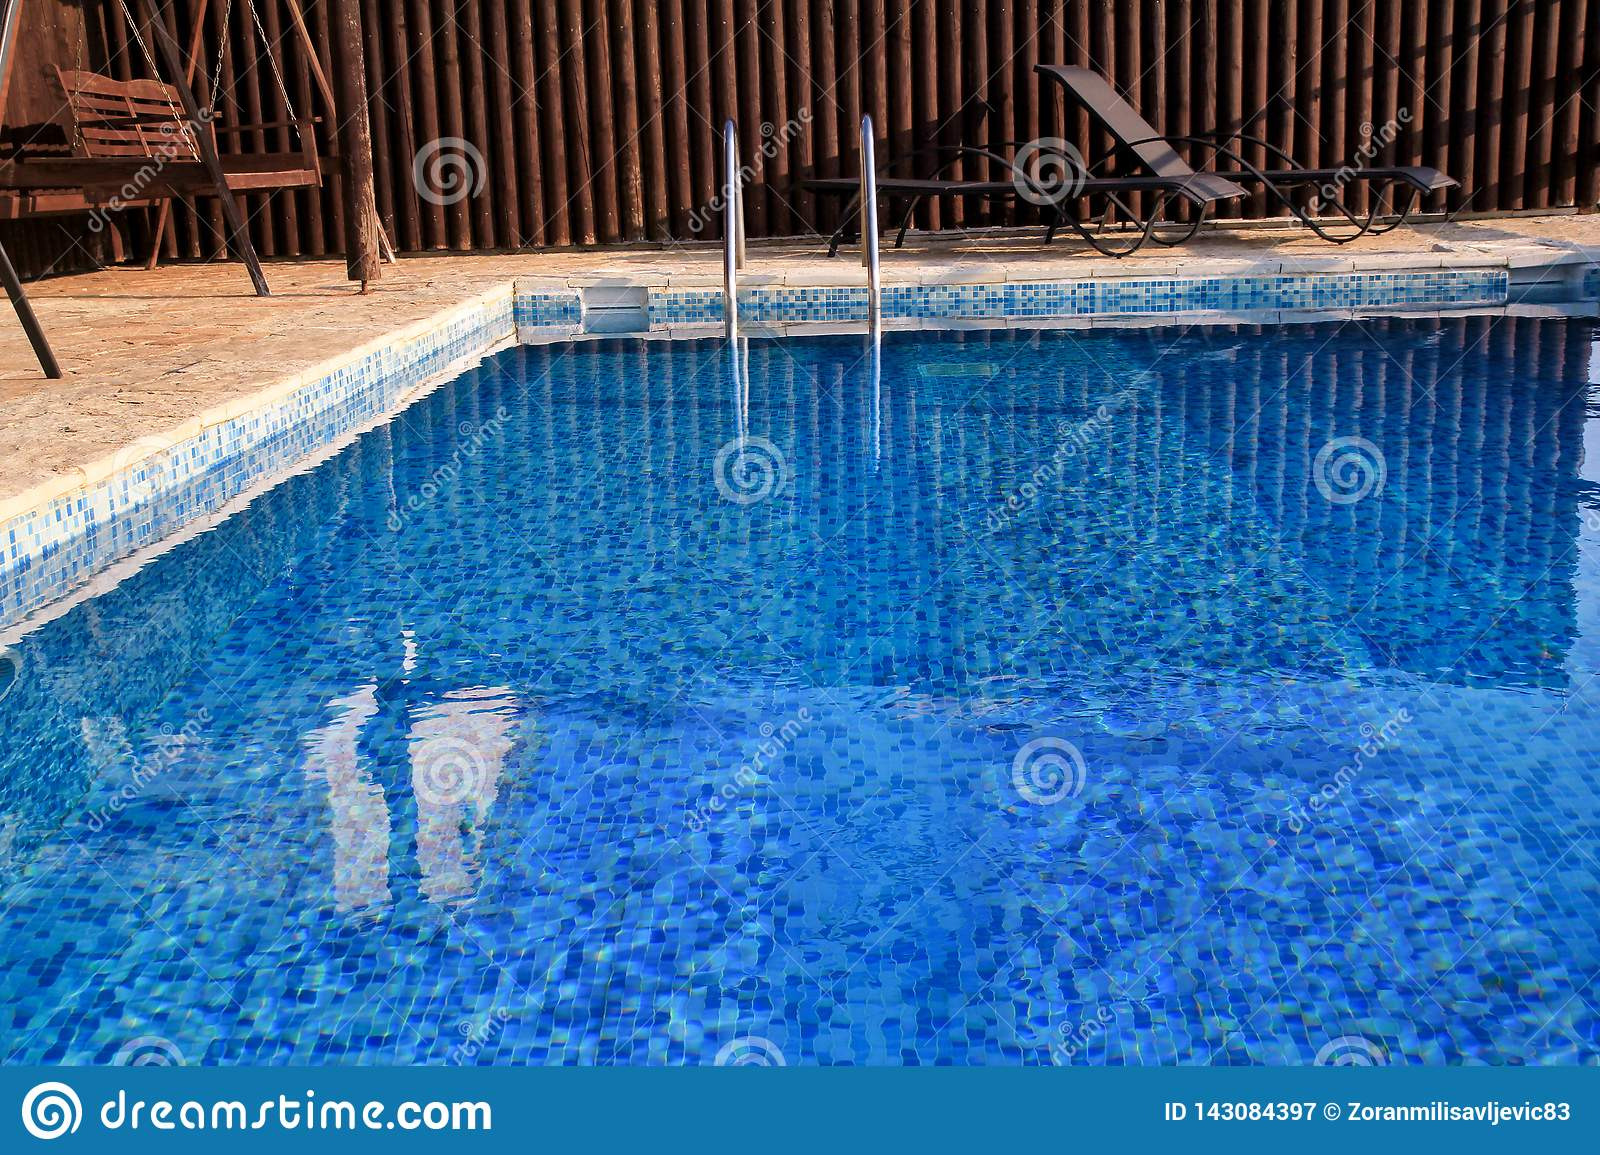 Swimming pool design modern architecture of luxury holiday villa. Relax near exotic swimming pool with handrail, deck chairs, sun